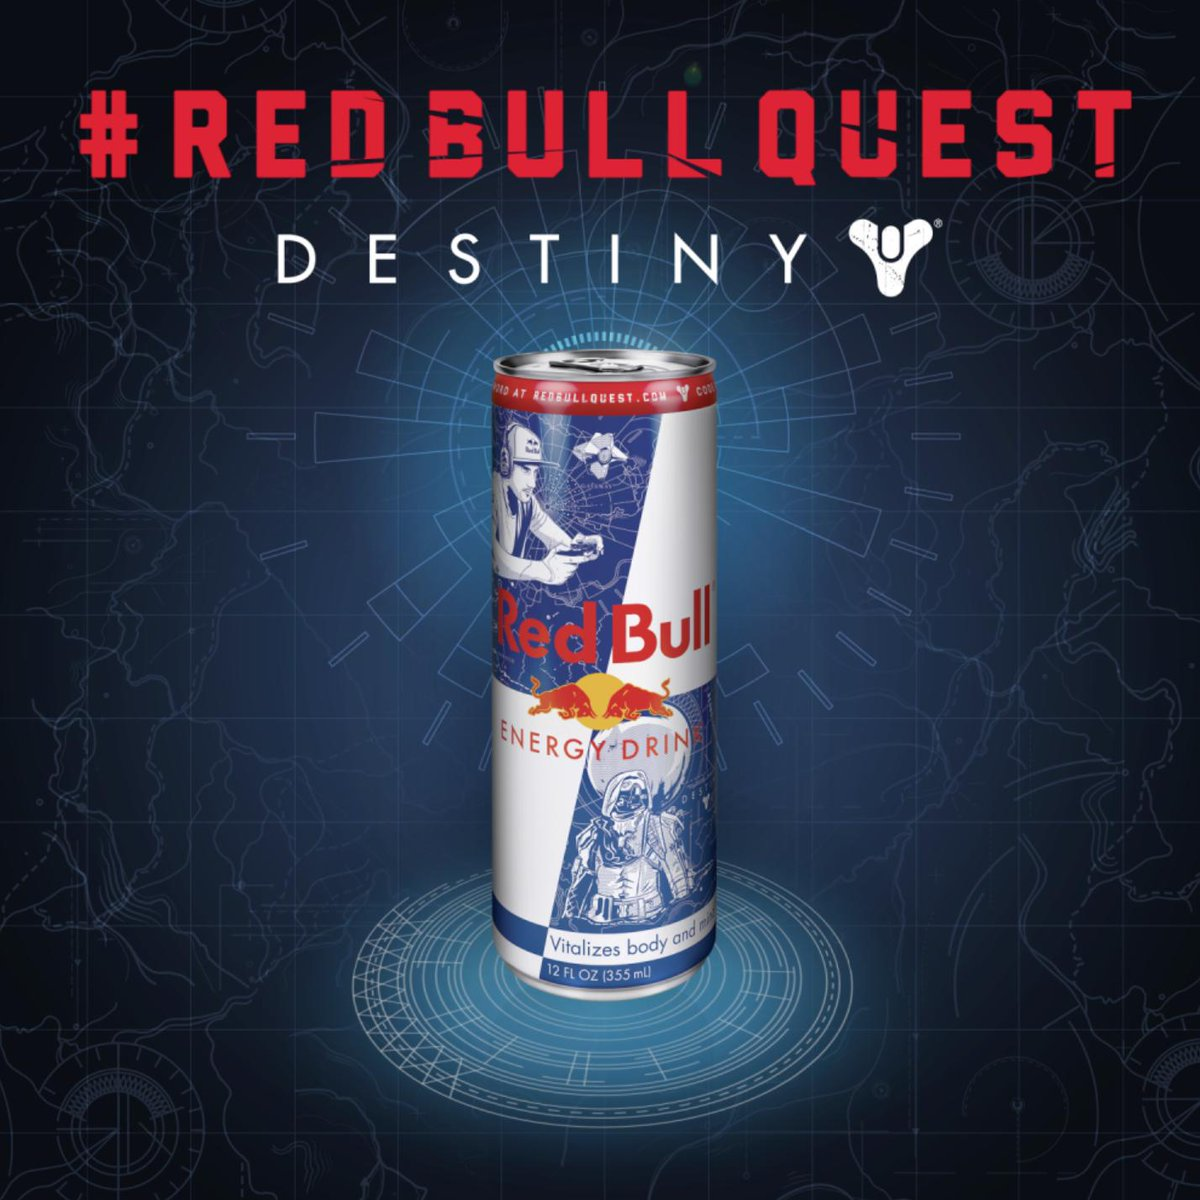 pick up destiny red bull cans to access an epic quest in destiny